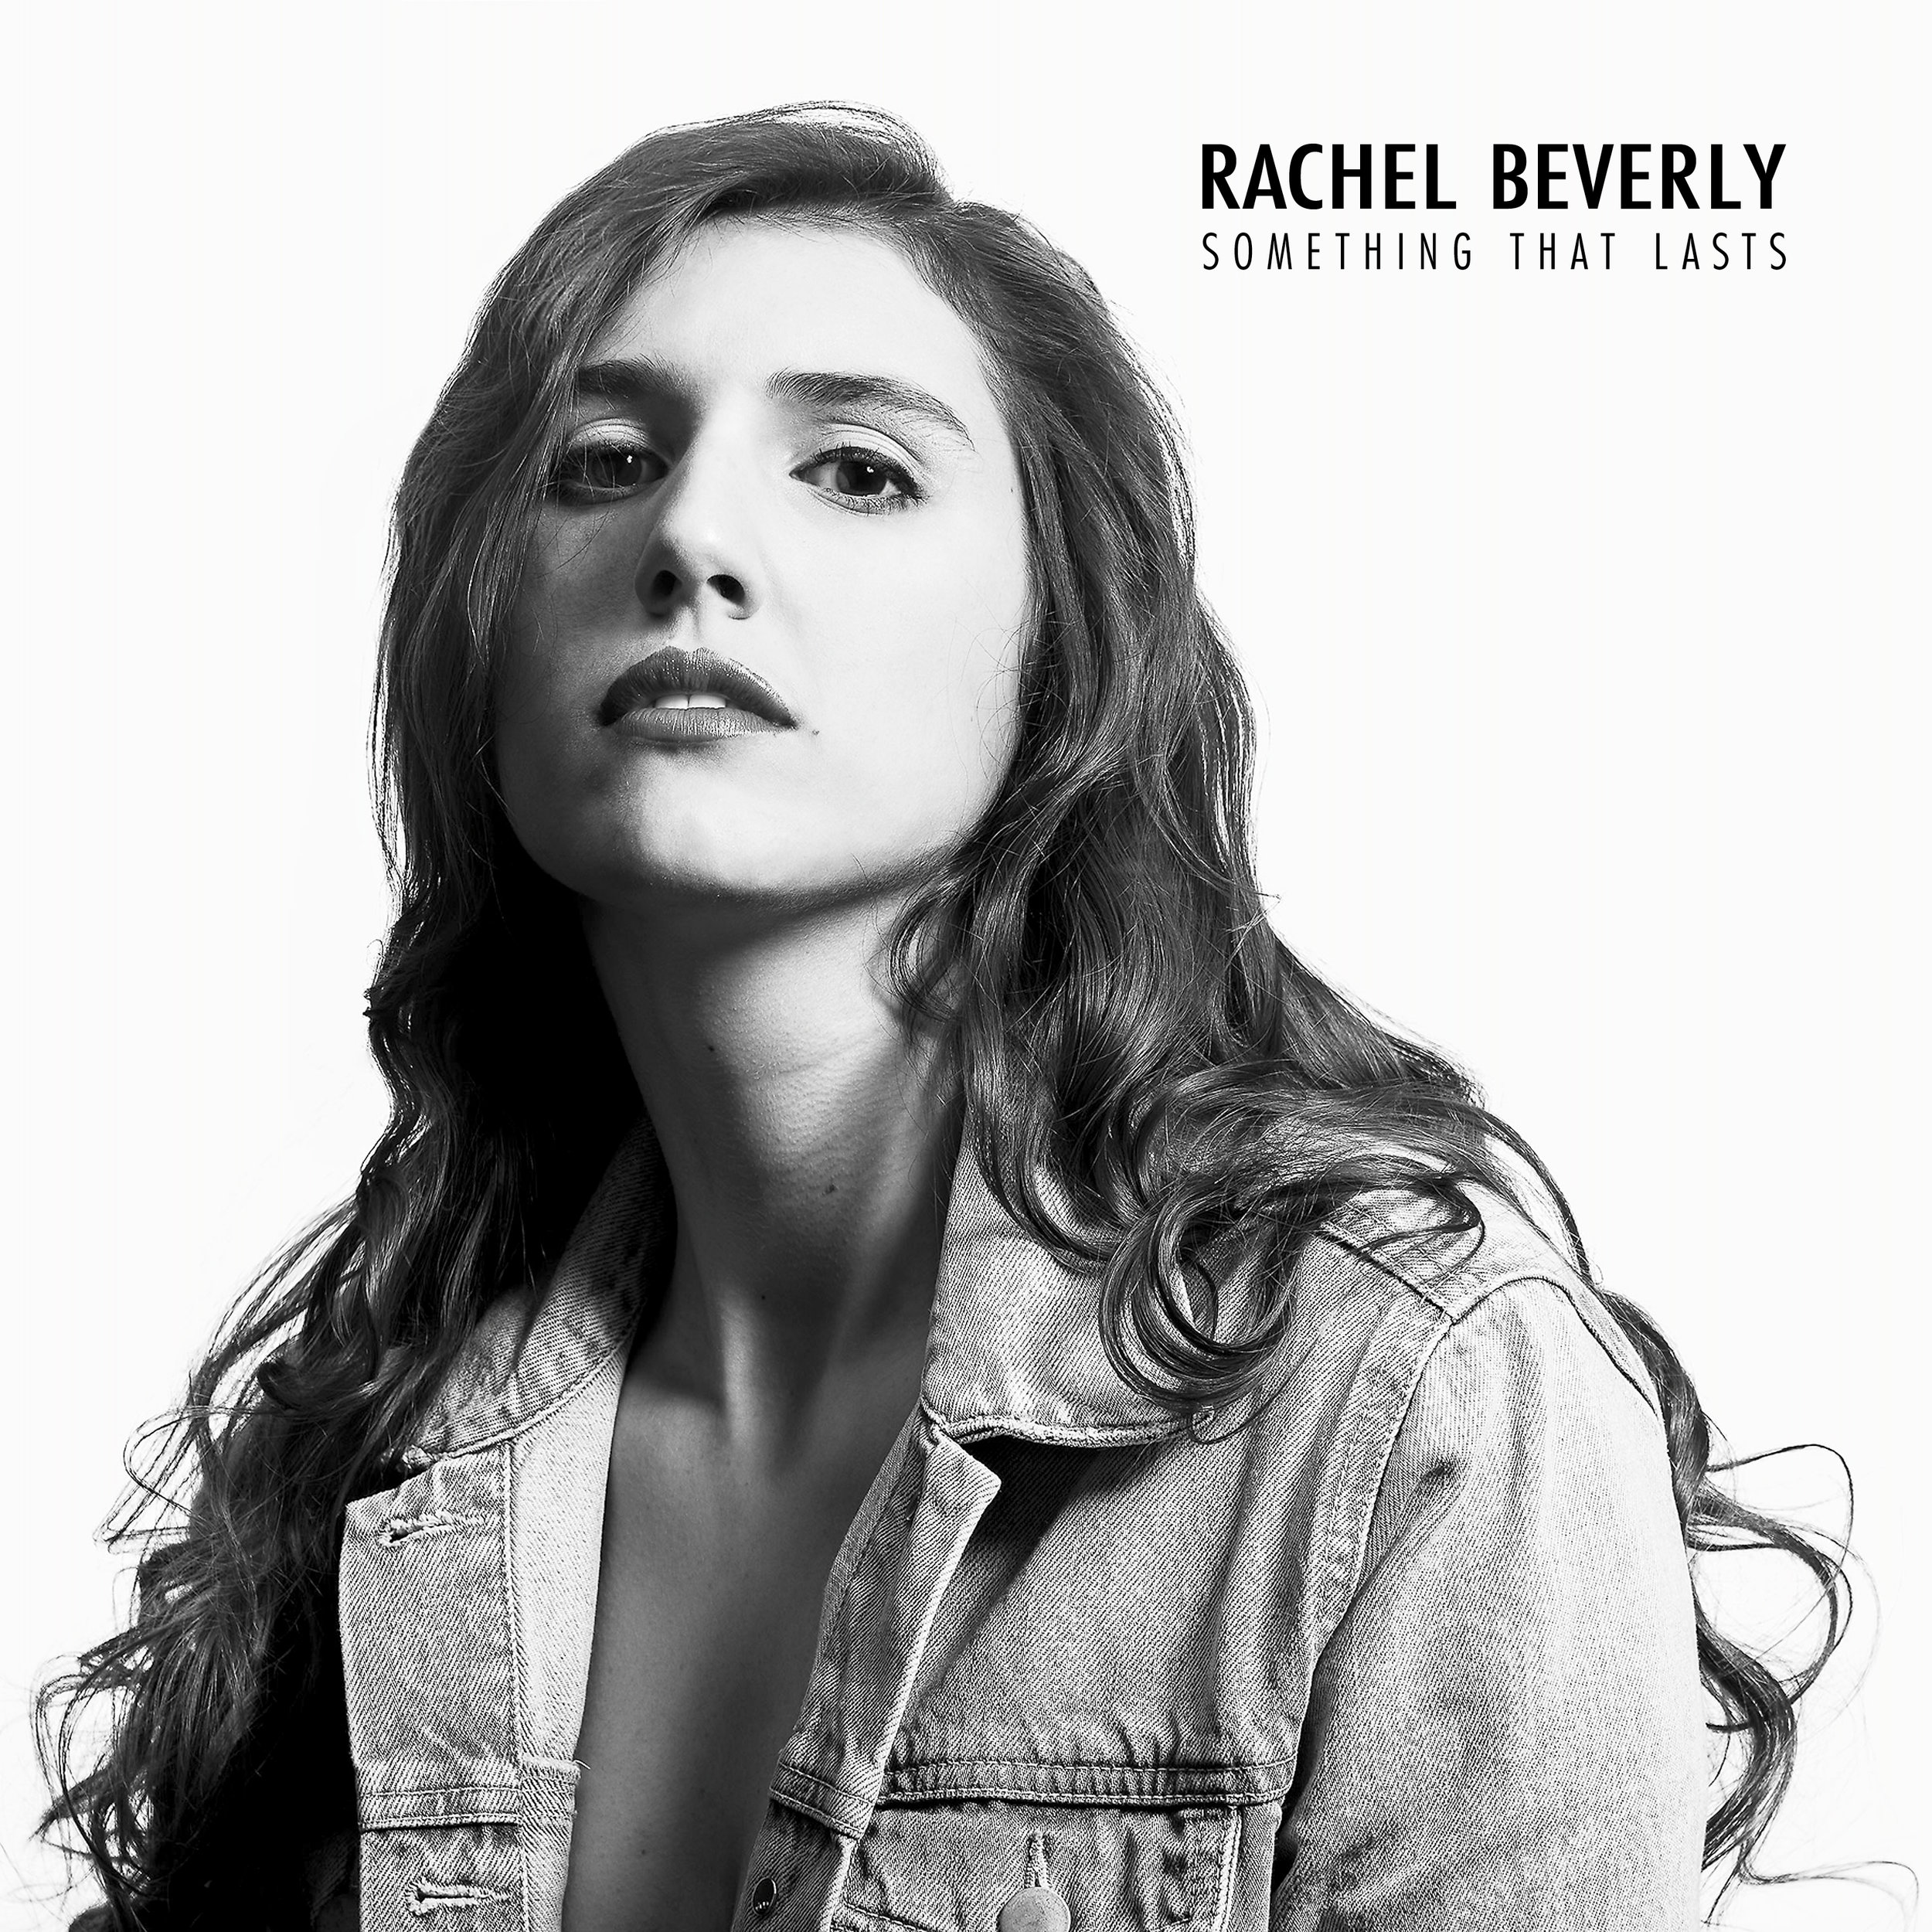 BIG_HEAVY_MEDIA-RACHEL_BEVERLY_ALBUM_COVER.jpg